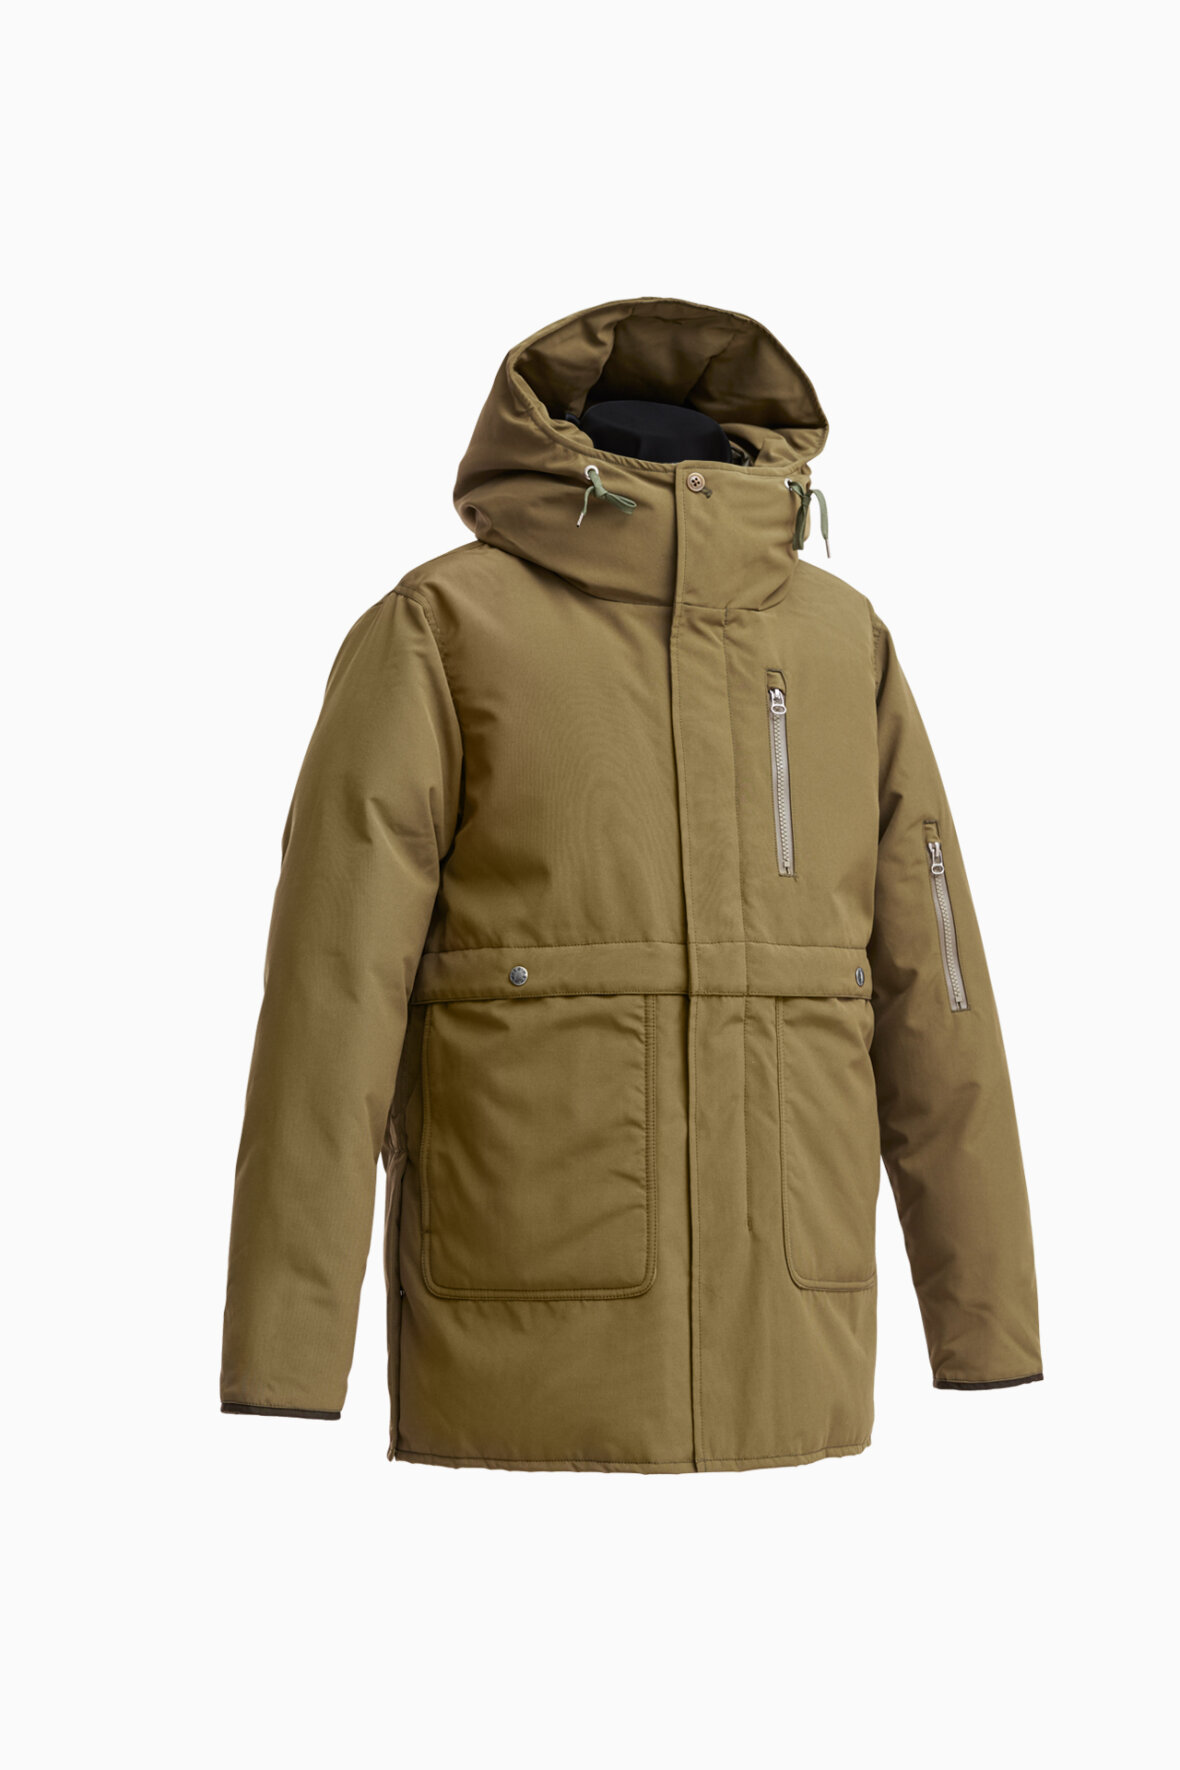 285a9aae8f2 Cut with a relaxed fit the Cruiser Jacket features four button flapped  pockets with press-stud closures, zip closures coupled with branded buttons  and an ...